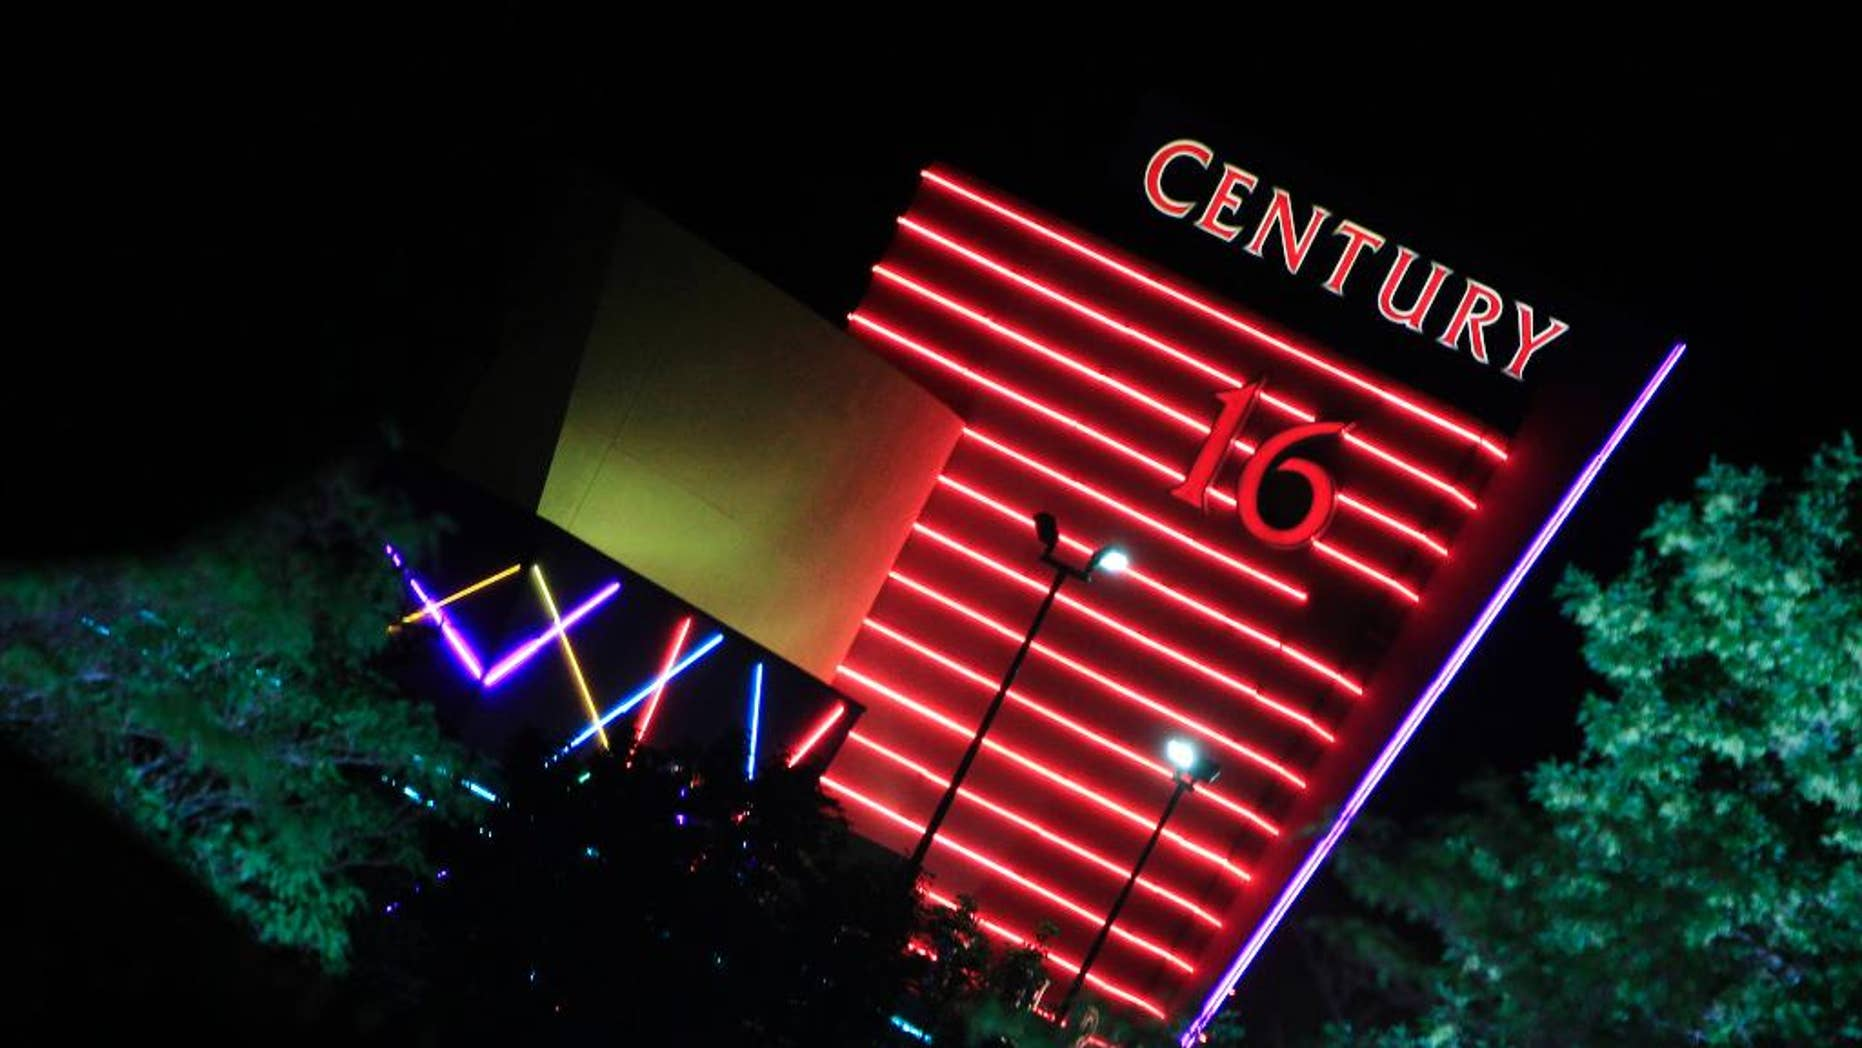 """FILE - In this Friday, July 20, 2012 file photo, the neon sign over the Century 16 theatre burns bright in the night east of the Aurora Mall in Aurora, Colo. The theatre was the scene of a bloody rampage in which 12 people died and 70 were injured during a bloody assault at the July 20, 2012 midnight premiere of """"The Dark Knight."""" On Monday, May 9, 28 victims' families will argue that Century Theatres should be held accountable for not doing more to prevent the slaughter in its property. (AP Photo/David Zalubowski, file)"""